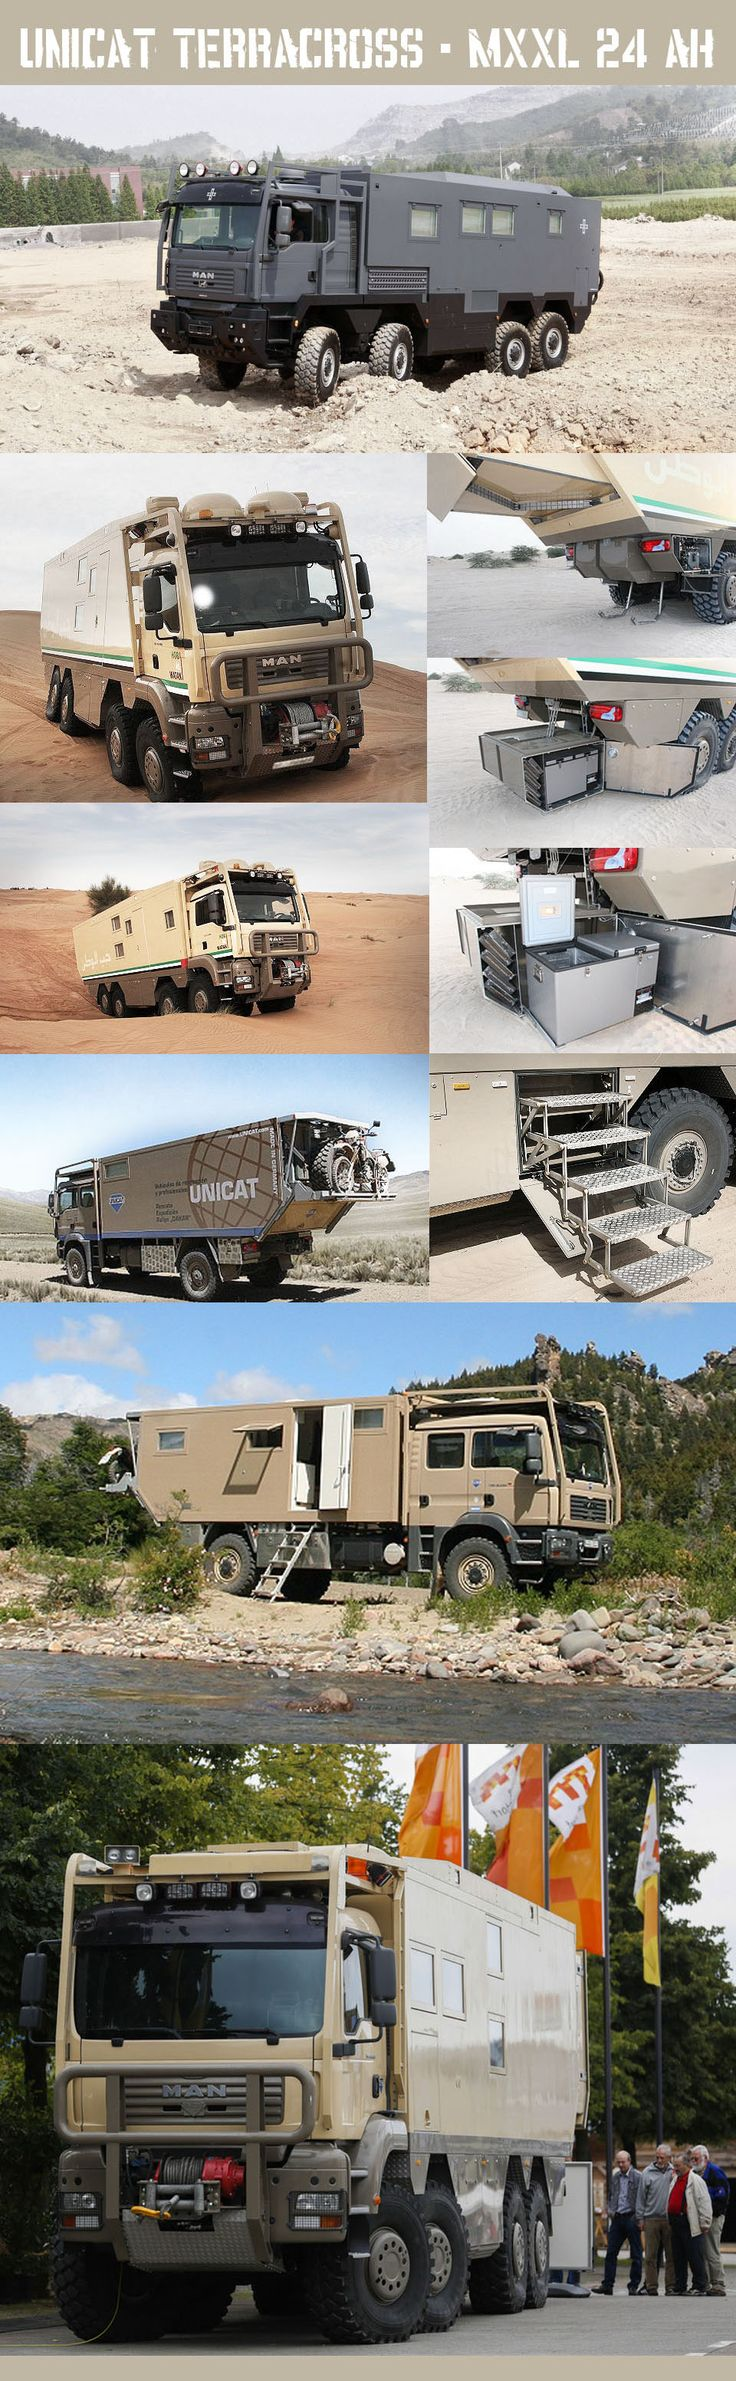 186 best camping truck images on Pinterest | Caravan, Campers and ...